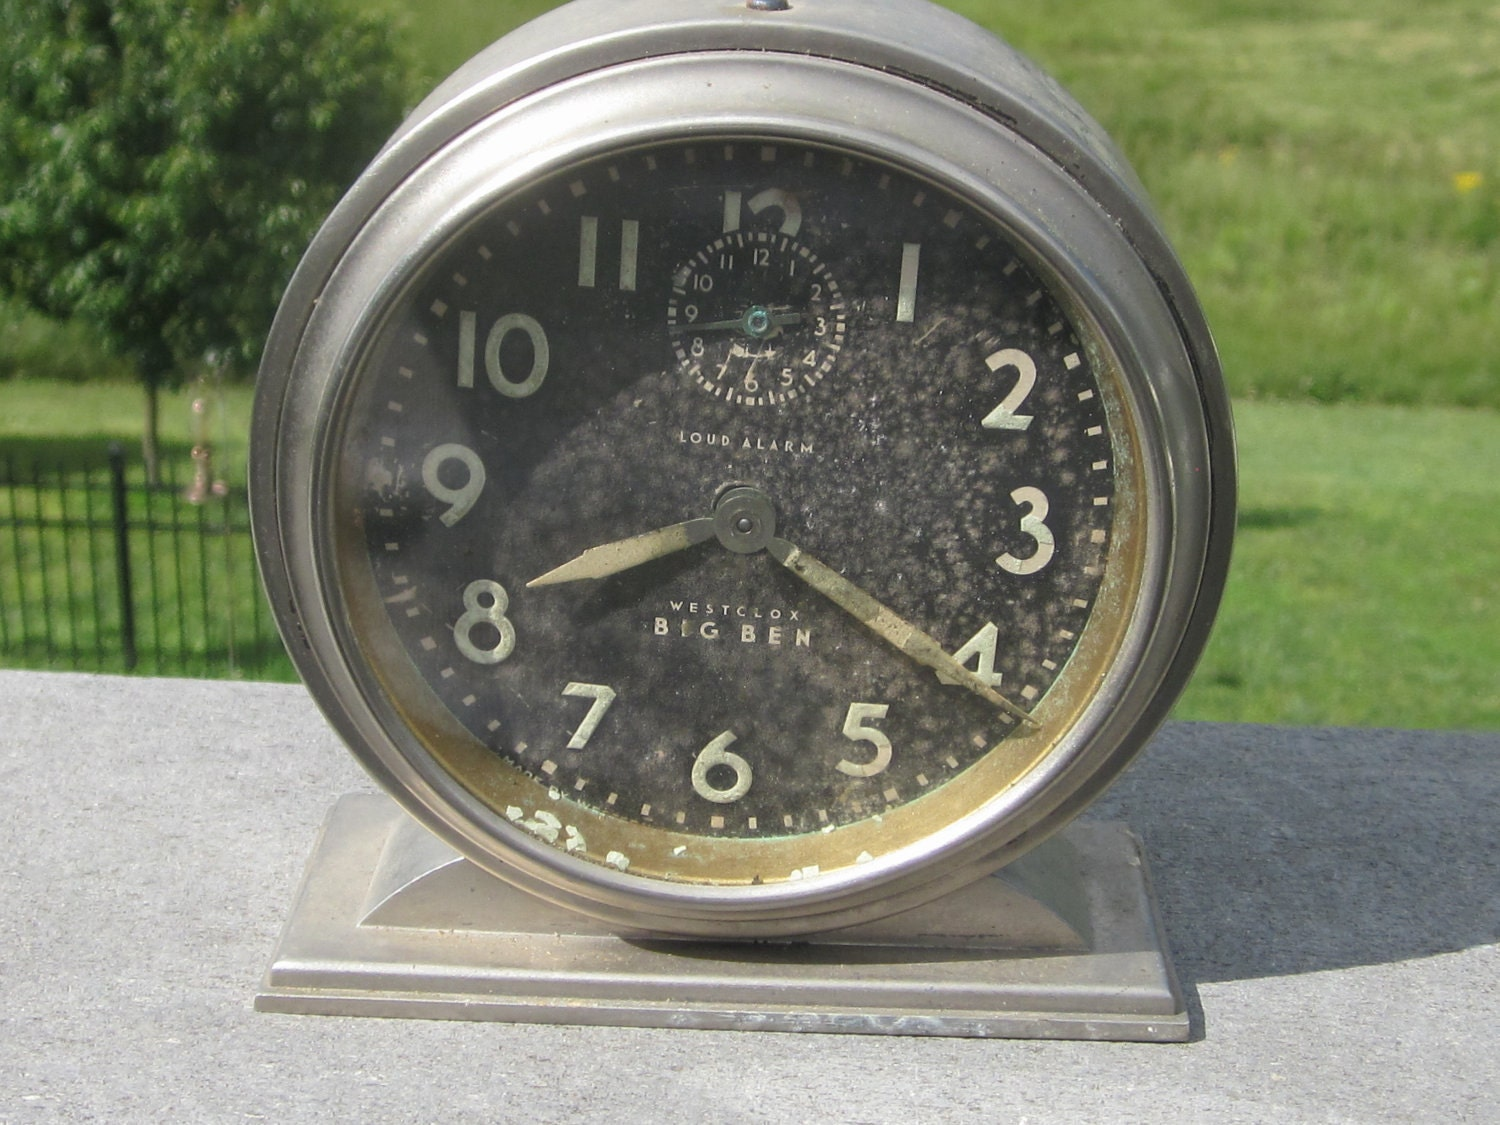 Sold And Reserved For Michele Big Ben Westclox Alarm Clock